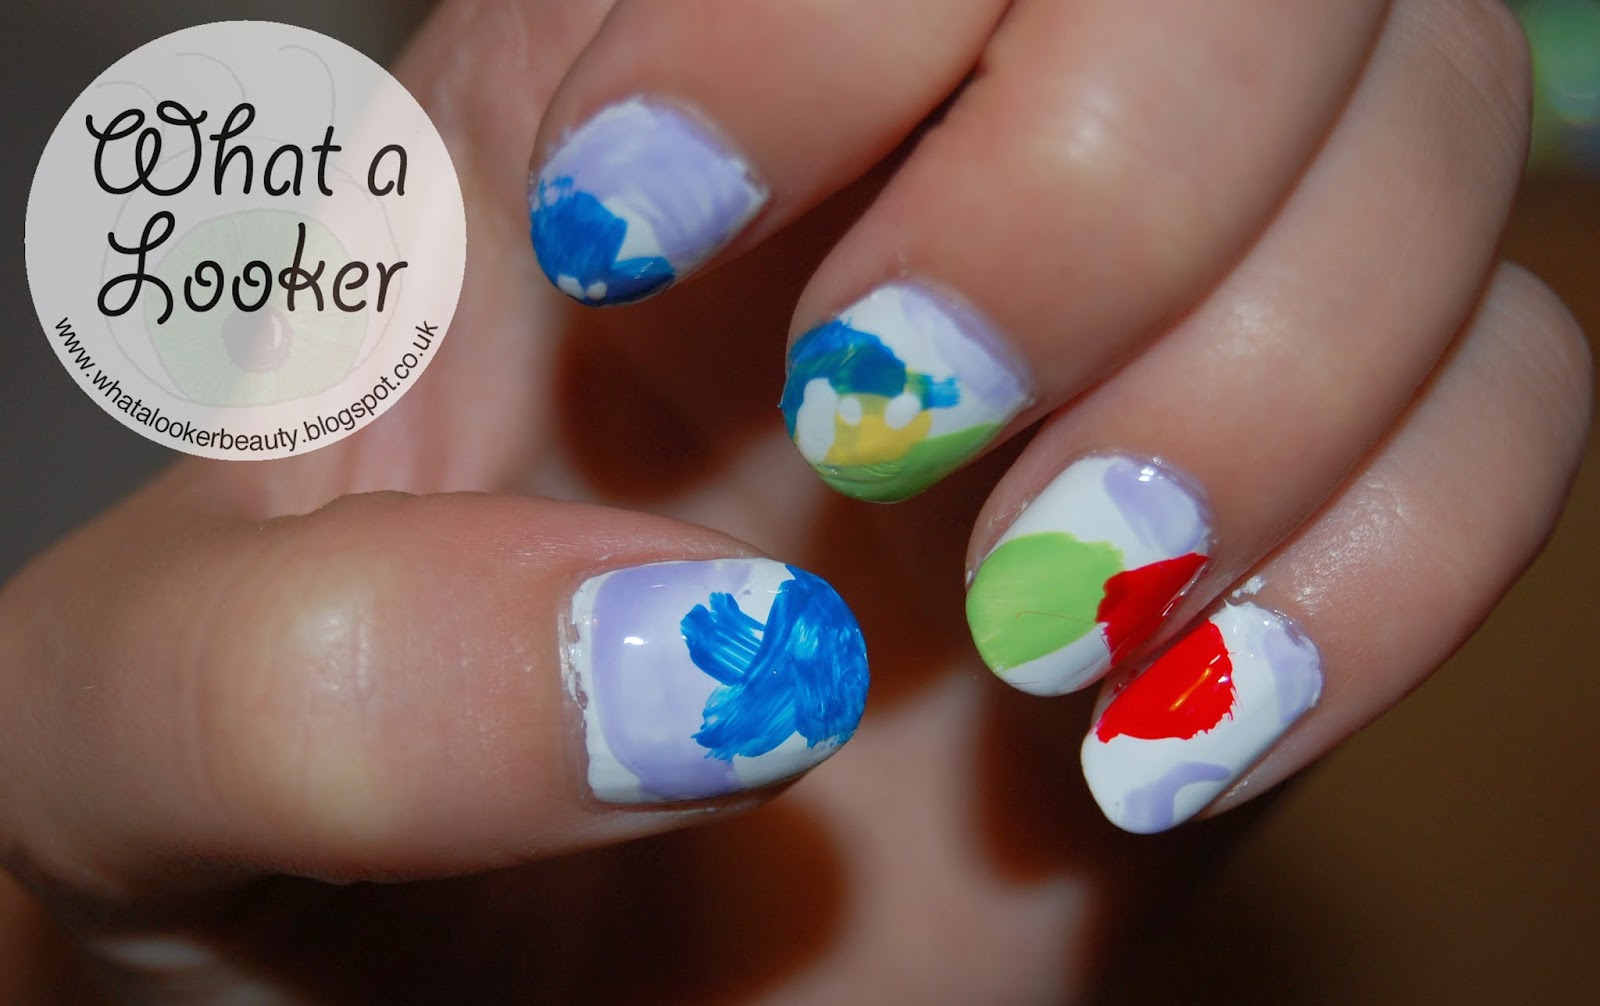 what a looker: Alt J Nails